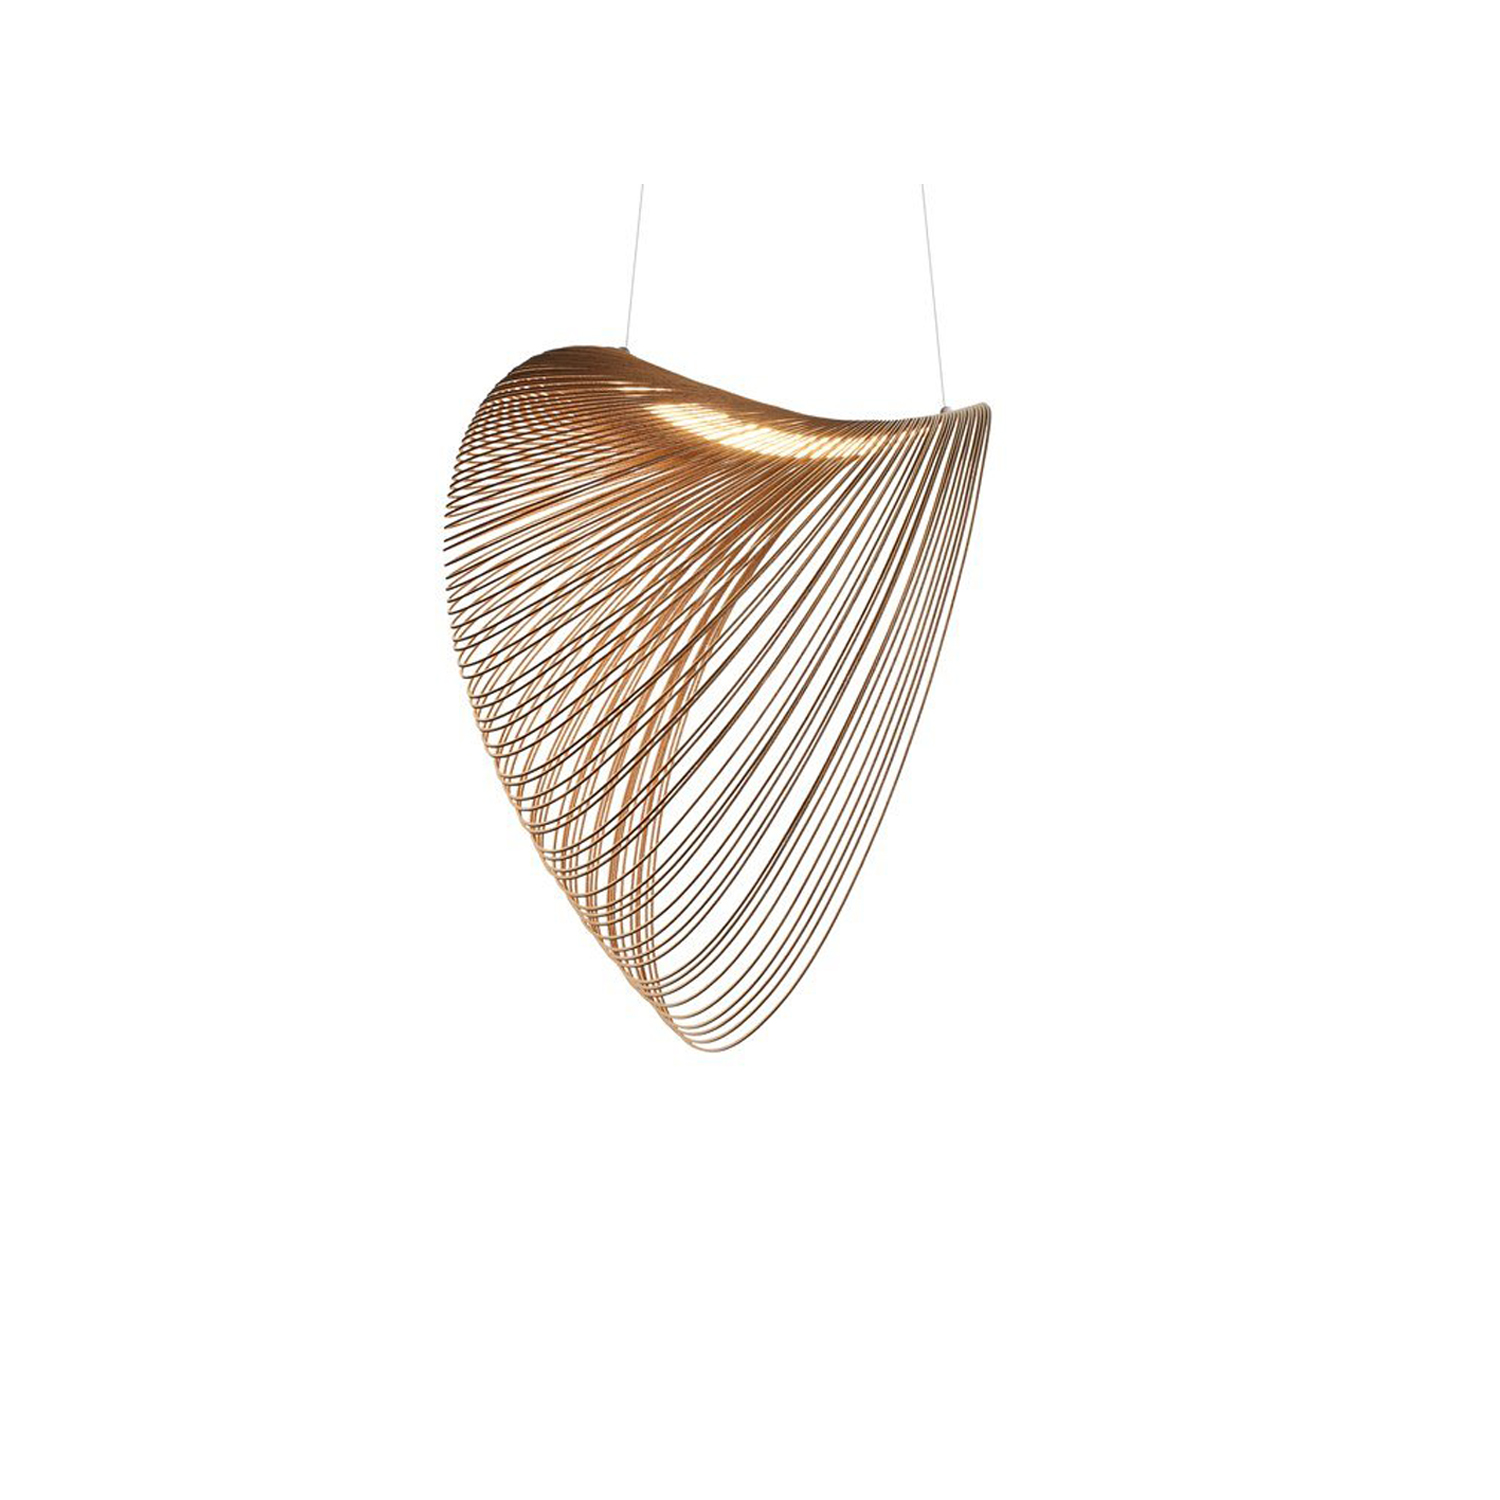 Illan Suspension Lamp - Technological innovation, research on materials and sustainability converge in harmony in the Illan suspension.  The lamp is composed of a very light body made with extremely thin, flexible plywood, cut by laser along densely packed equidistant lines. This is a precious and varying material whose unique natural character can be seen in the typical grain pattern. These characteristics are the distinctive features of the project. Once suspended from the ceiling, Illan takes on volume thanks to the force of gravity and assumes its characteristic form that floats in the air.  The highly decorative and emotional impact expressed through the intelligent and original use of materials, make it a truly special lamp. Skillful use of the LED source creates very comfortable, relaxing diffused lighting. Illan is available in multiple sizes up to one meter in diameter. | Matter of Stuff